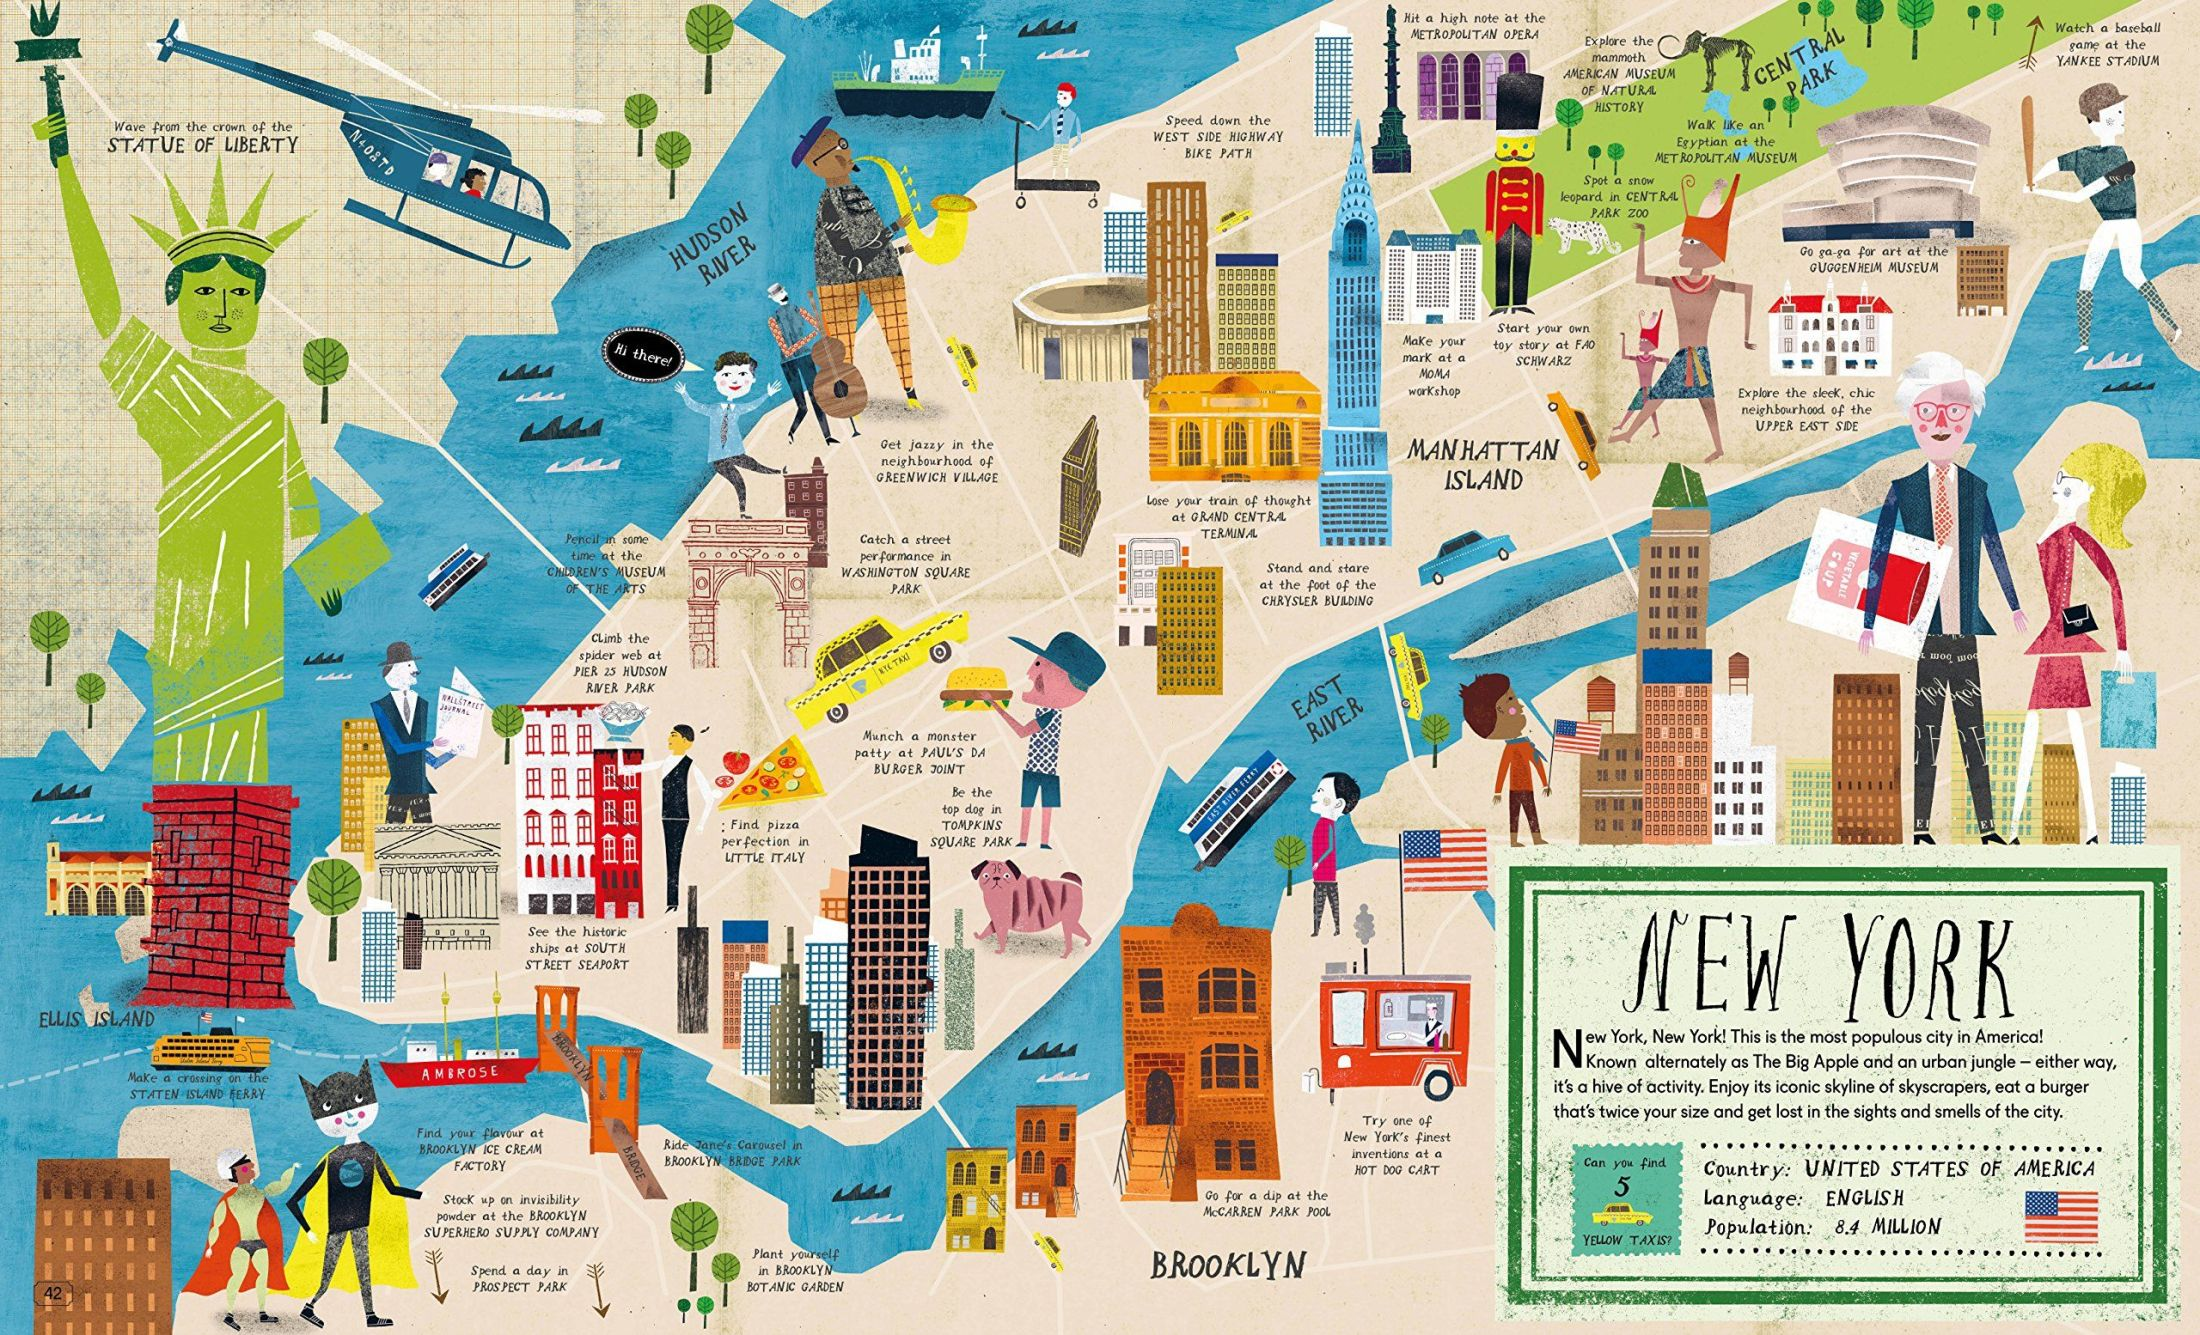 Best Image Of Diagram New York Map World Atlas More Maps - New york map ellis island